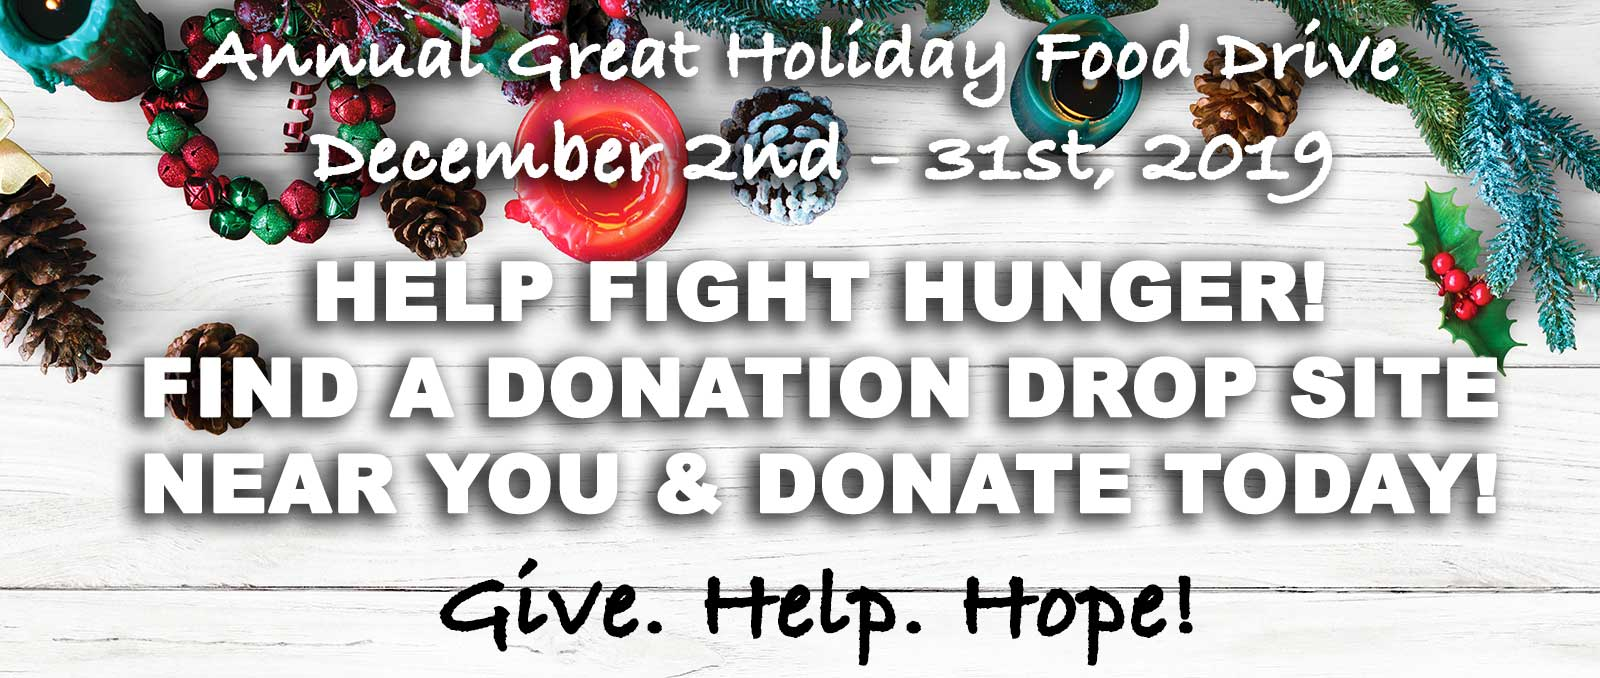 12th Annual Great Holiday Food Drive Donation Drop Sites Will Be Released Shortly...Check Back Soon!